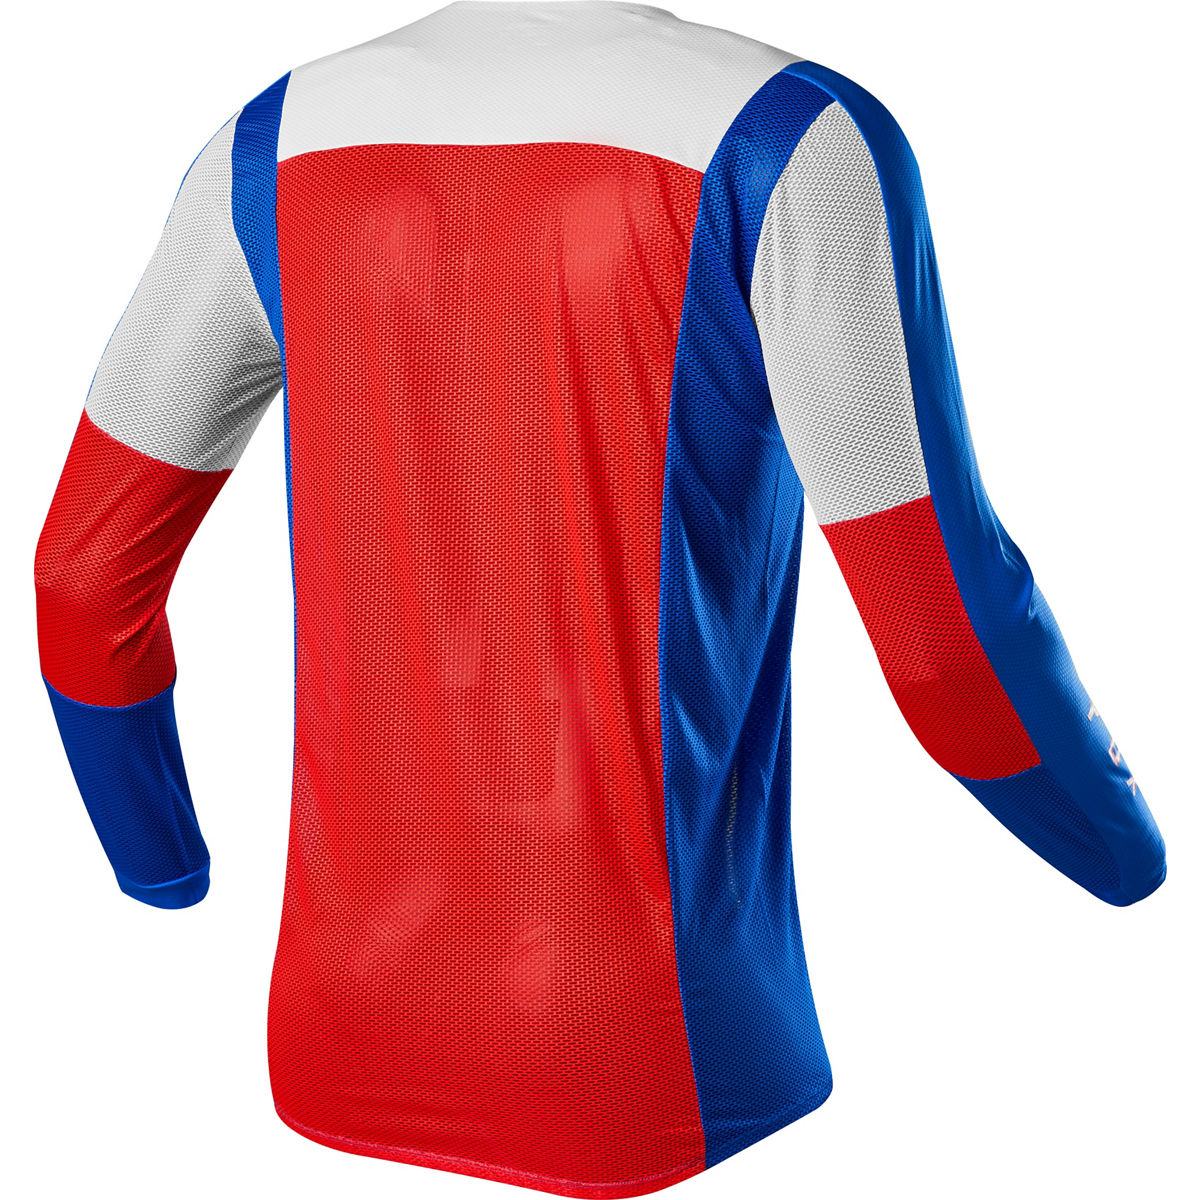 24859-149 2021 Fox Racing Airline Pilr Jersey Blue Red Maillot Crosstrui Trikot